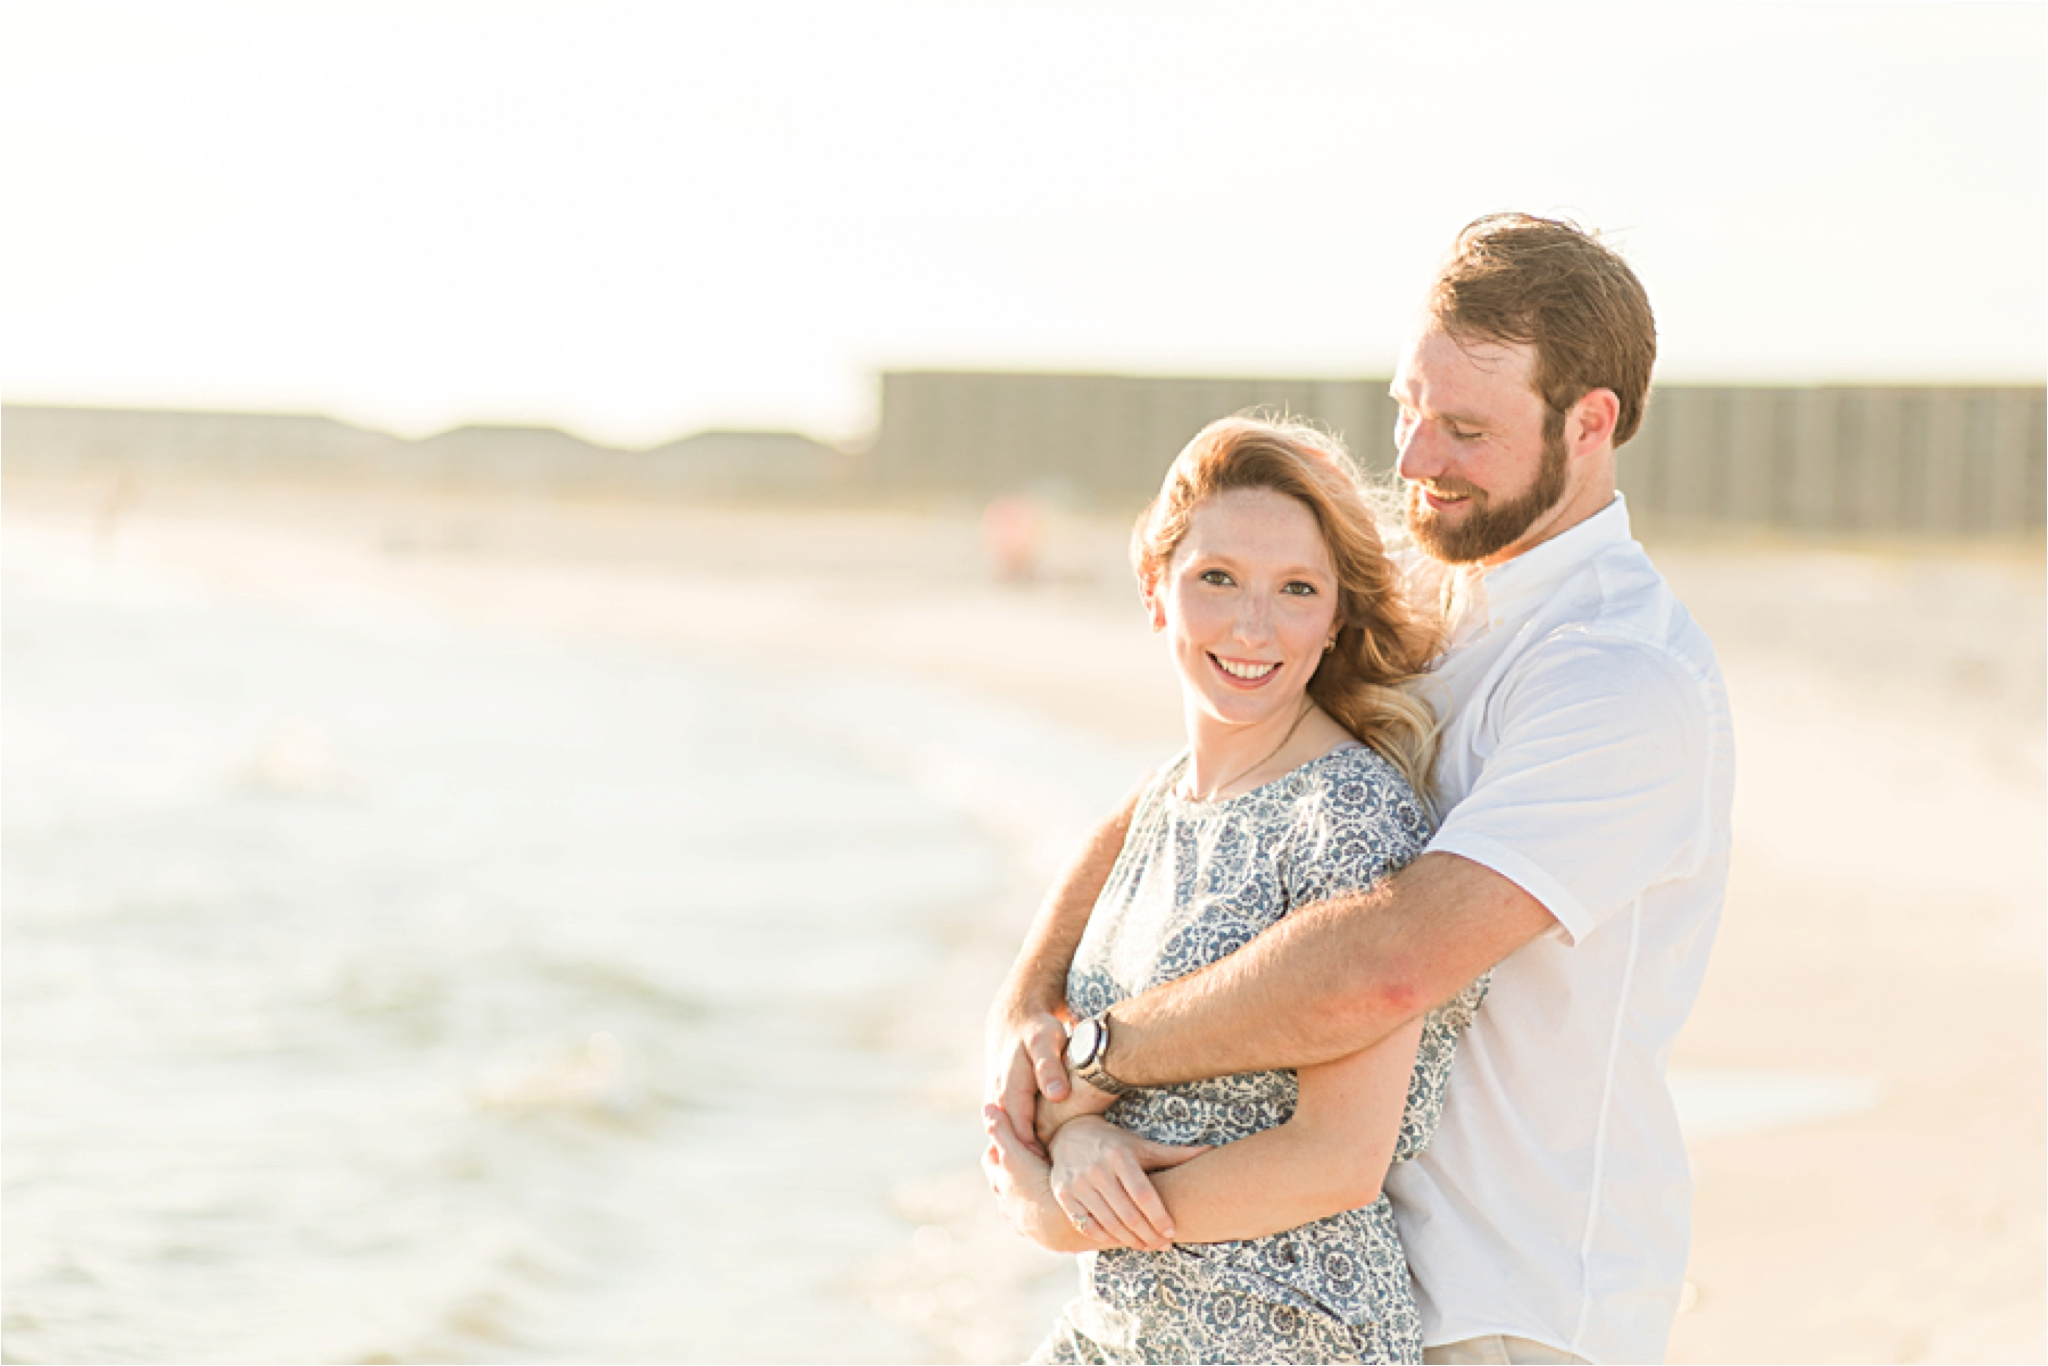 Romantic Dauphin Island Engagement Photos | Chase & Lorin